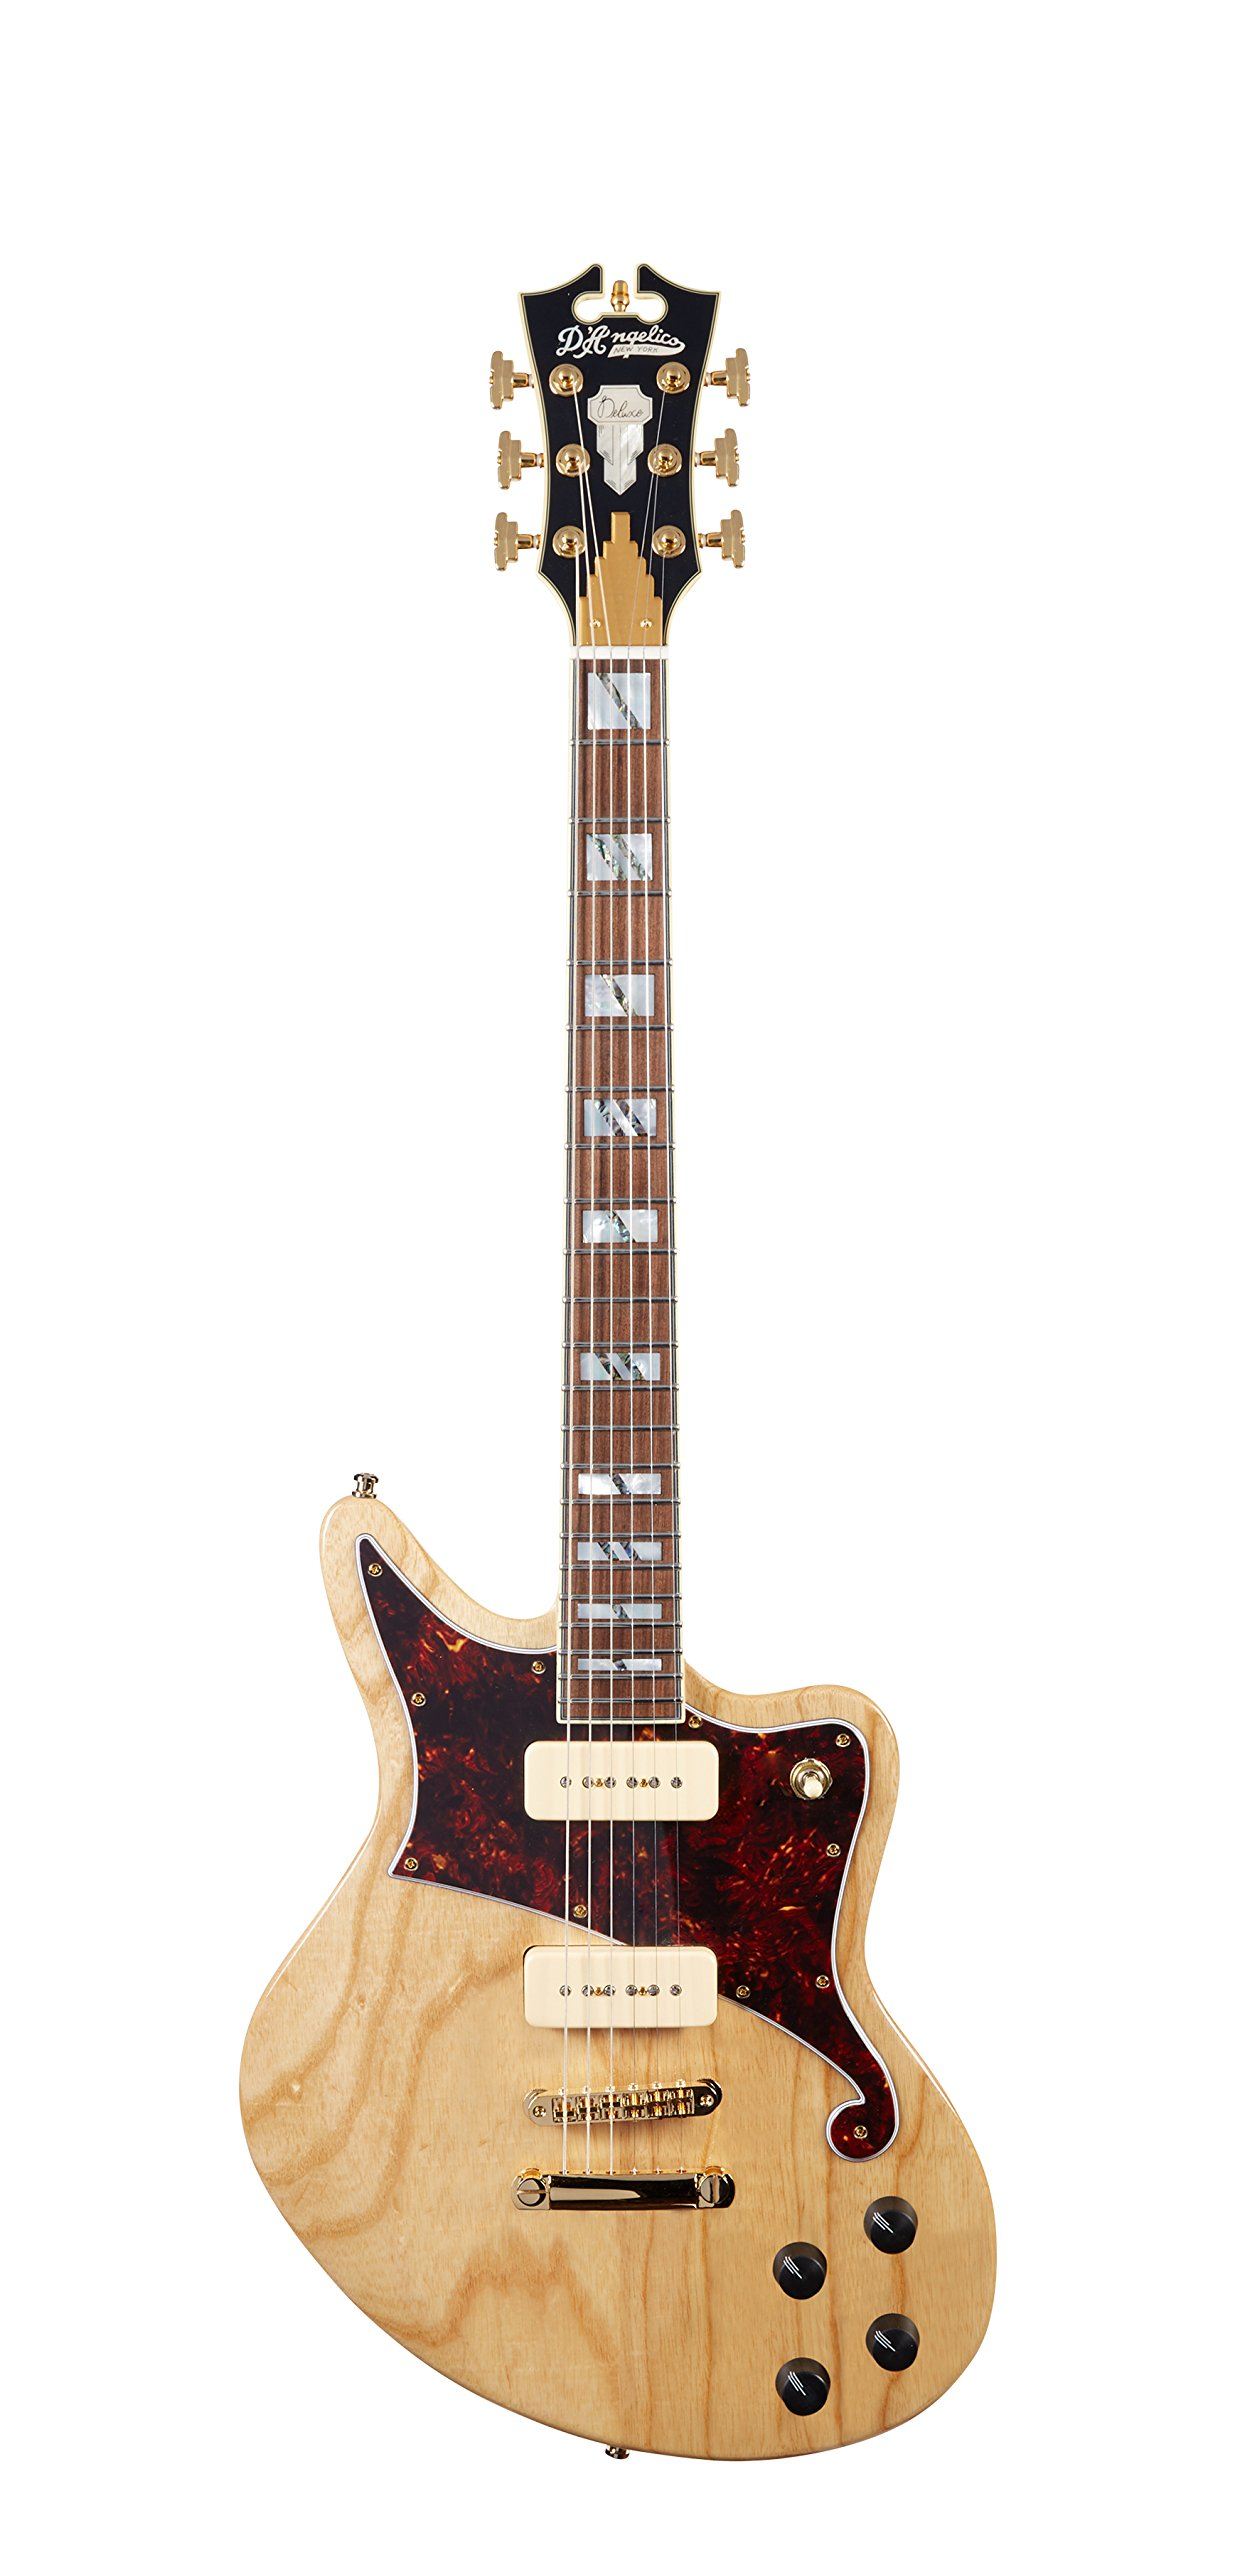 Cheap D Angelico Deluxe Bedford Electric Guitar w/ Seymour Duncan P-90 Pickups - Natural Swamp Ash Black Friday & Cyber Monday 2019